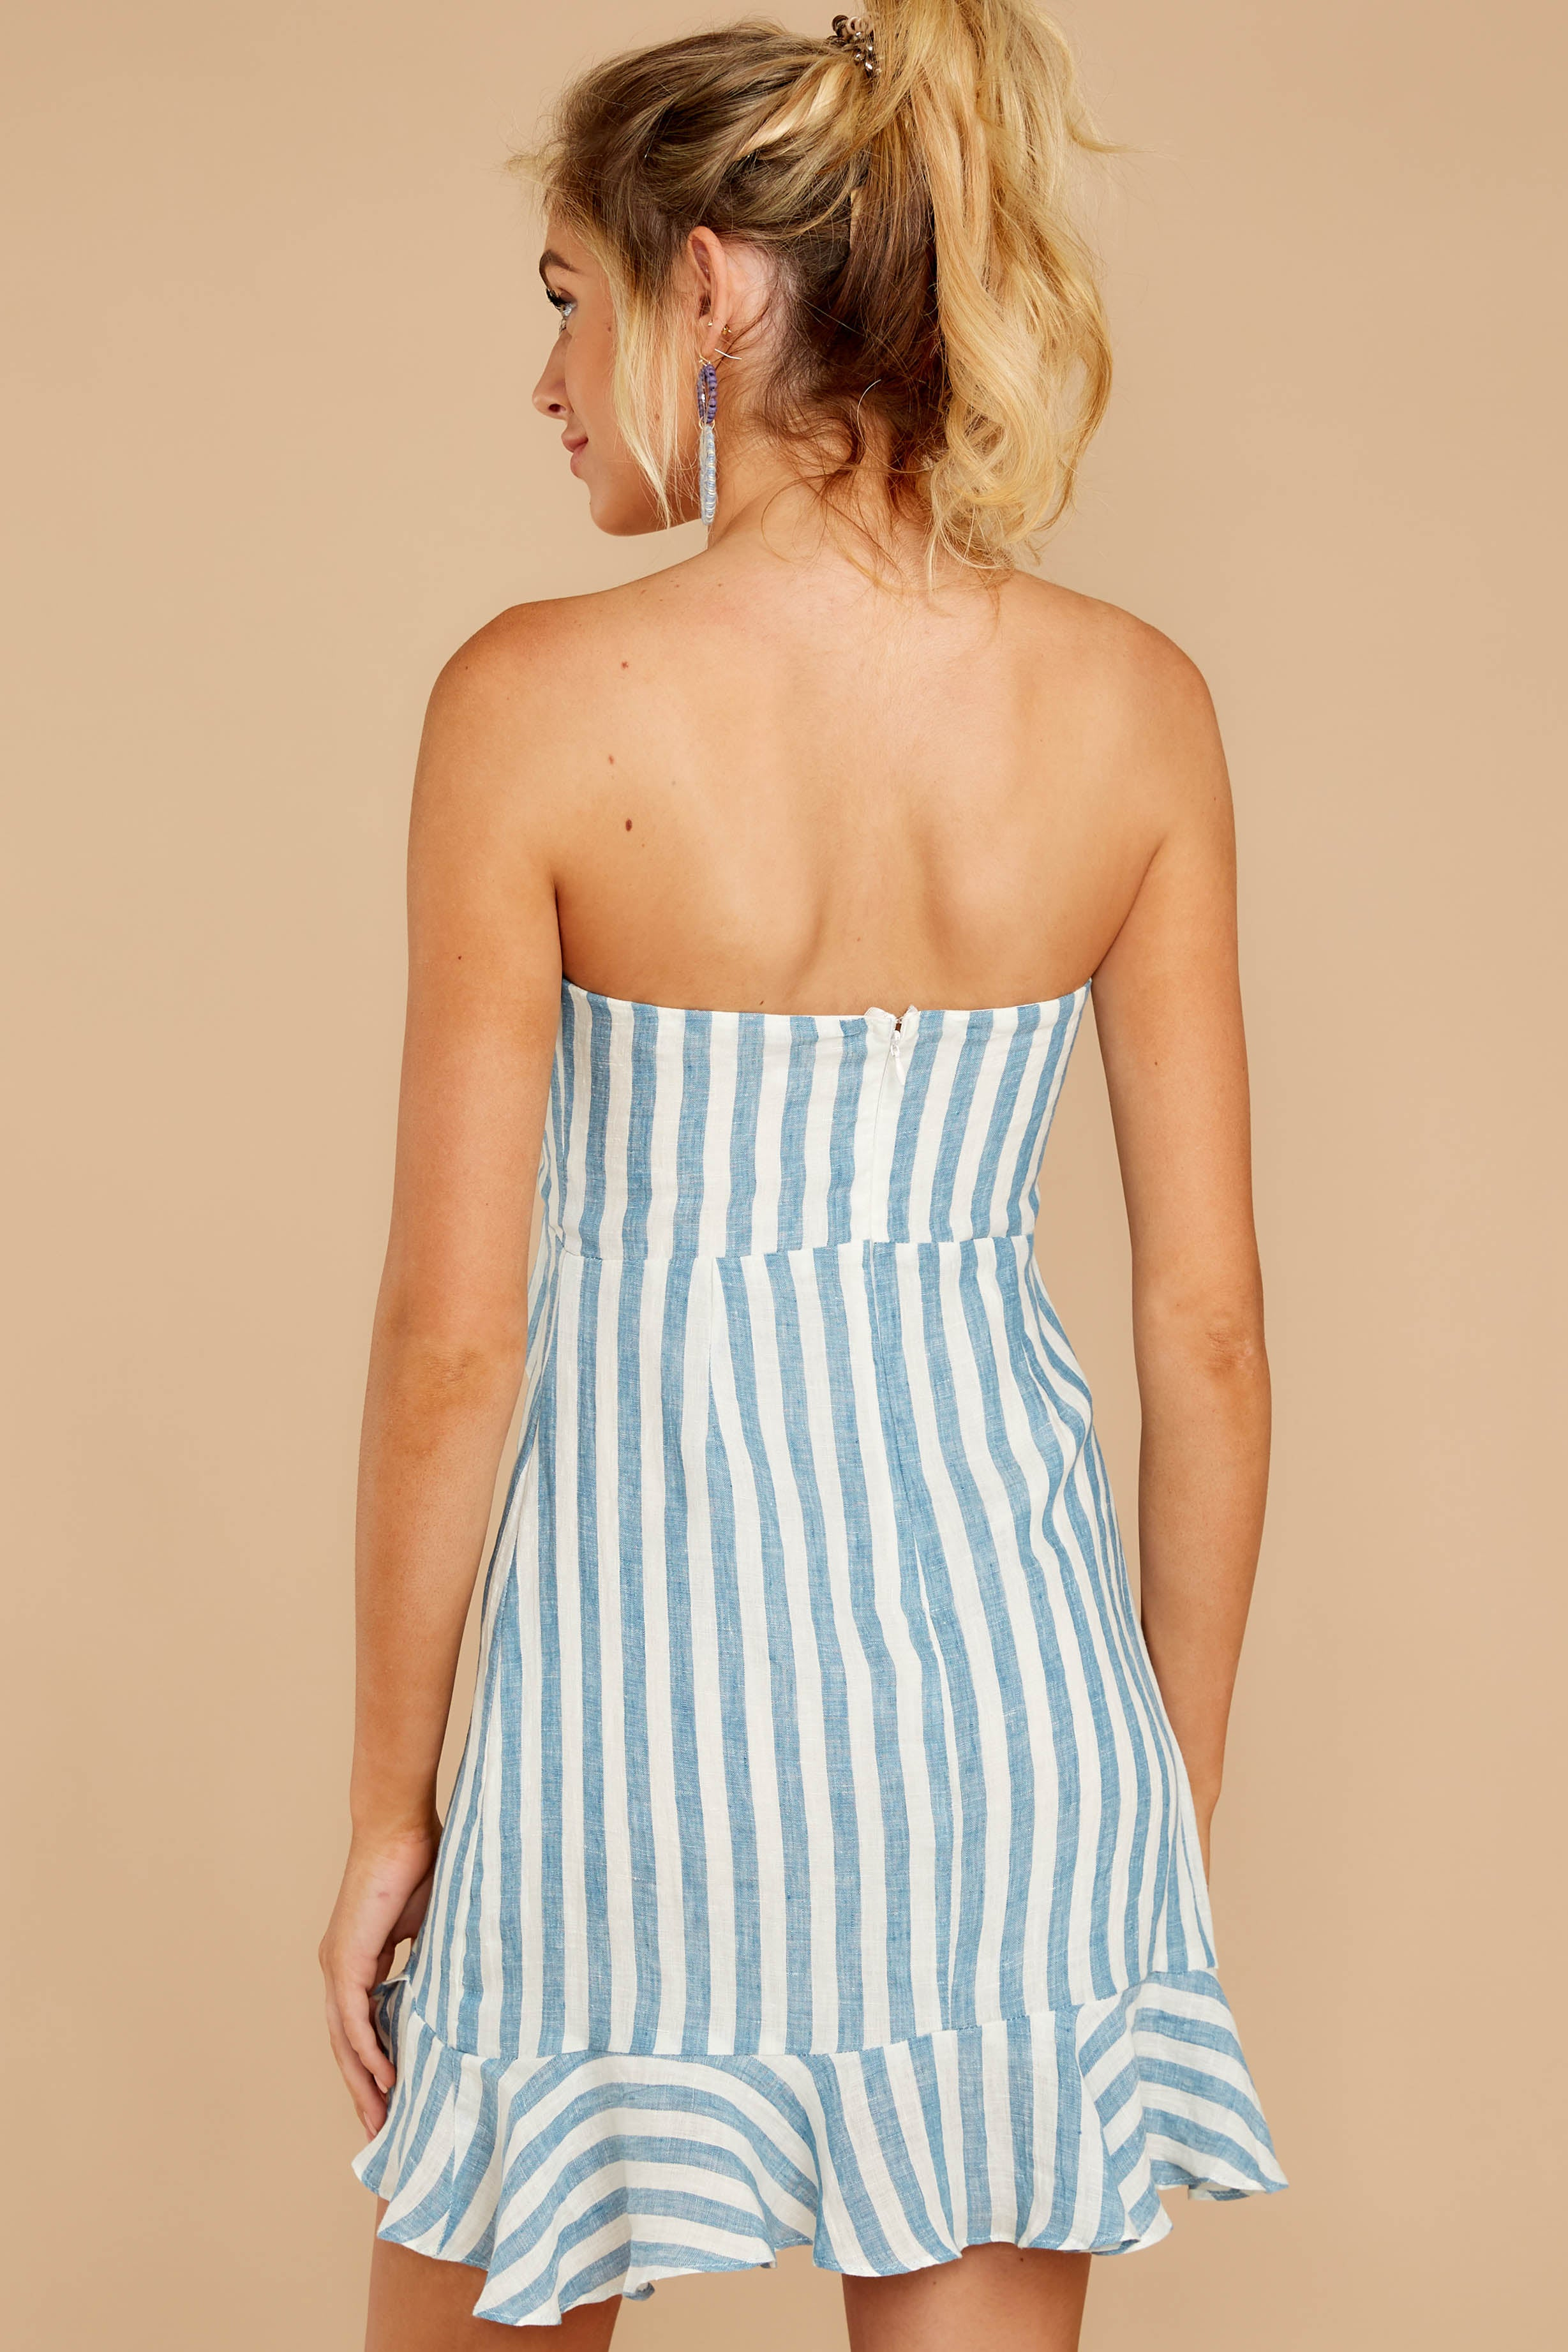 7 Ahoy There Light Blue Stripe Dress at reddress.com